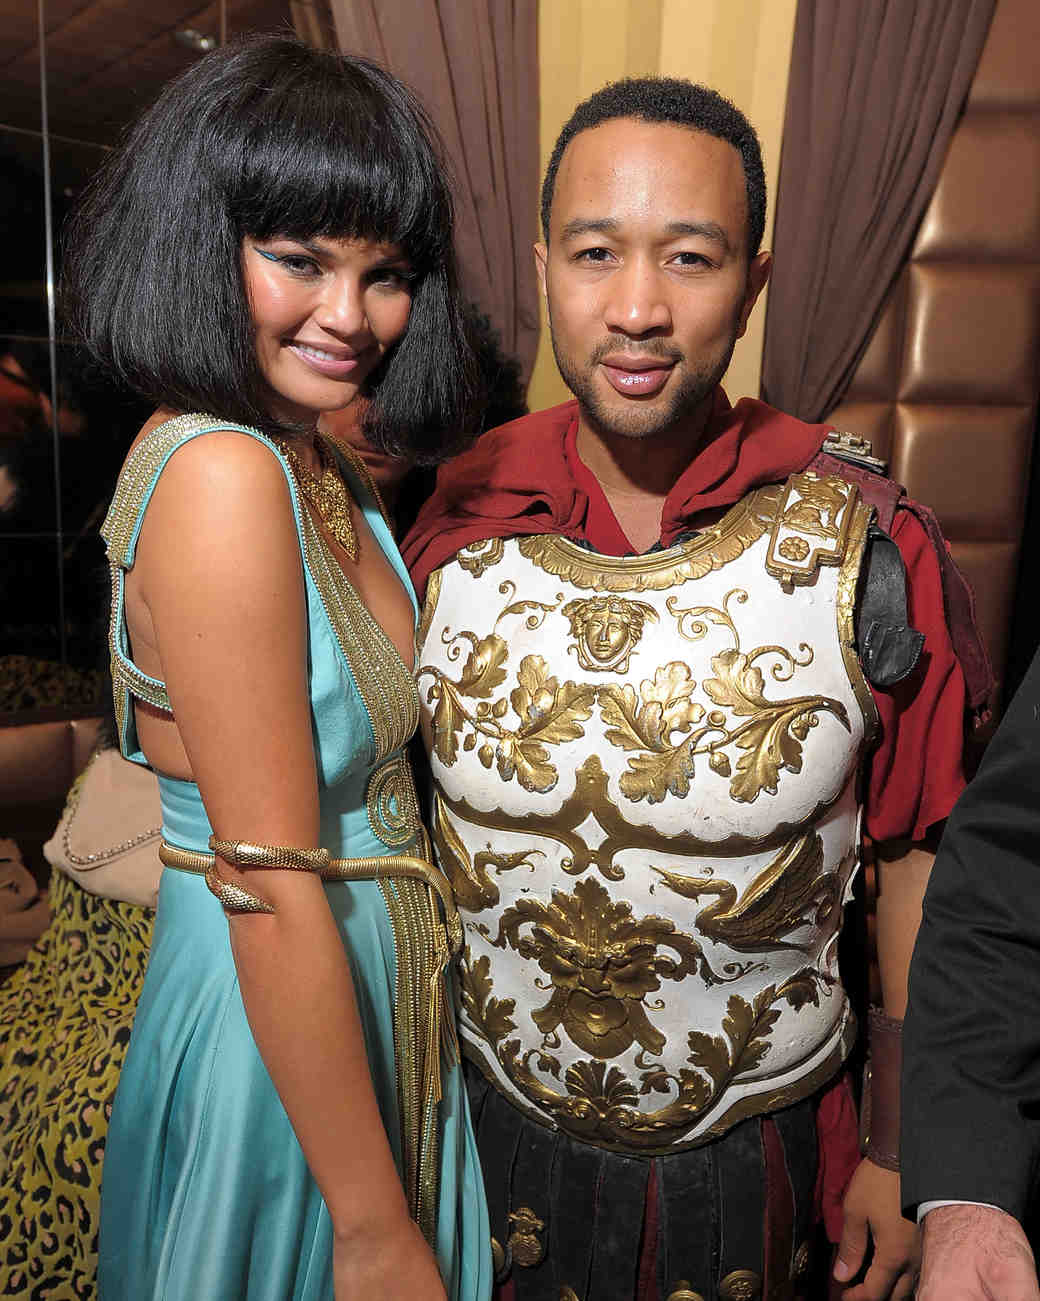 The Best Celebrity Couples Halloween Costumes Ever - Glamour